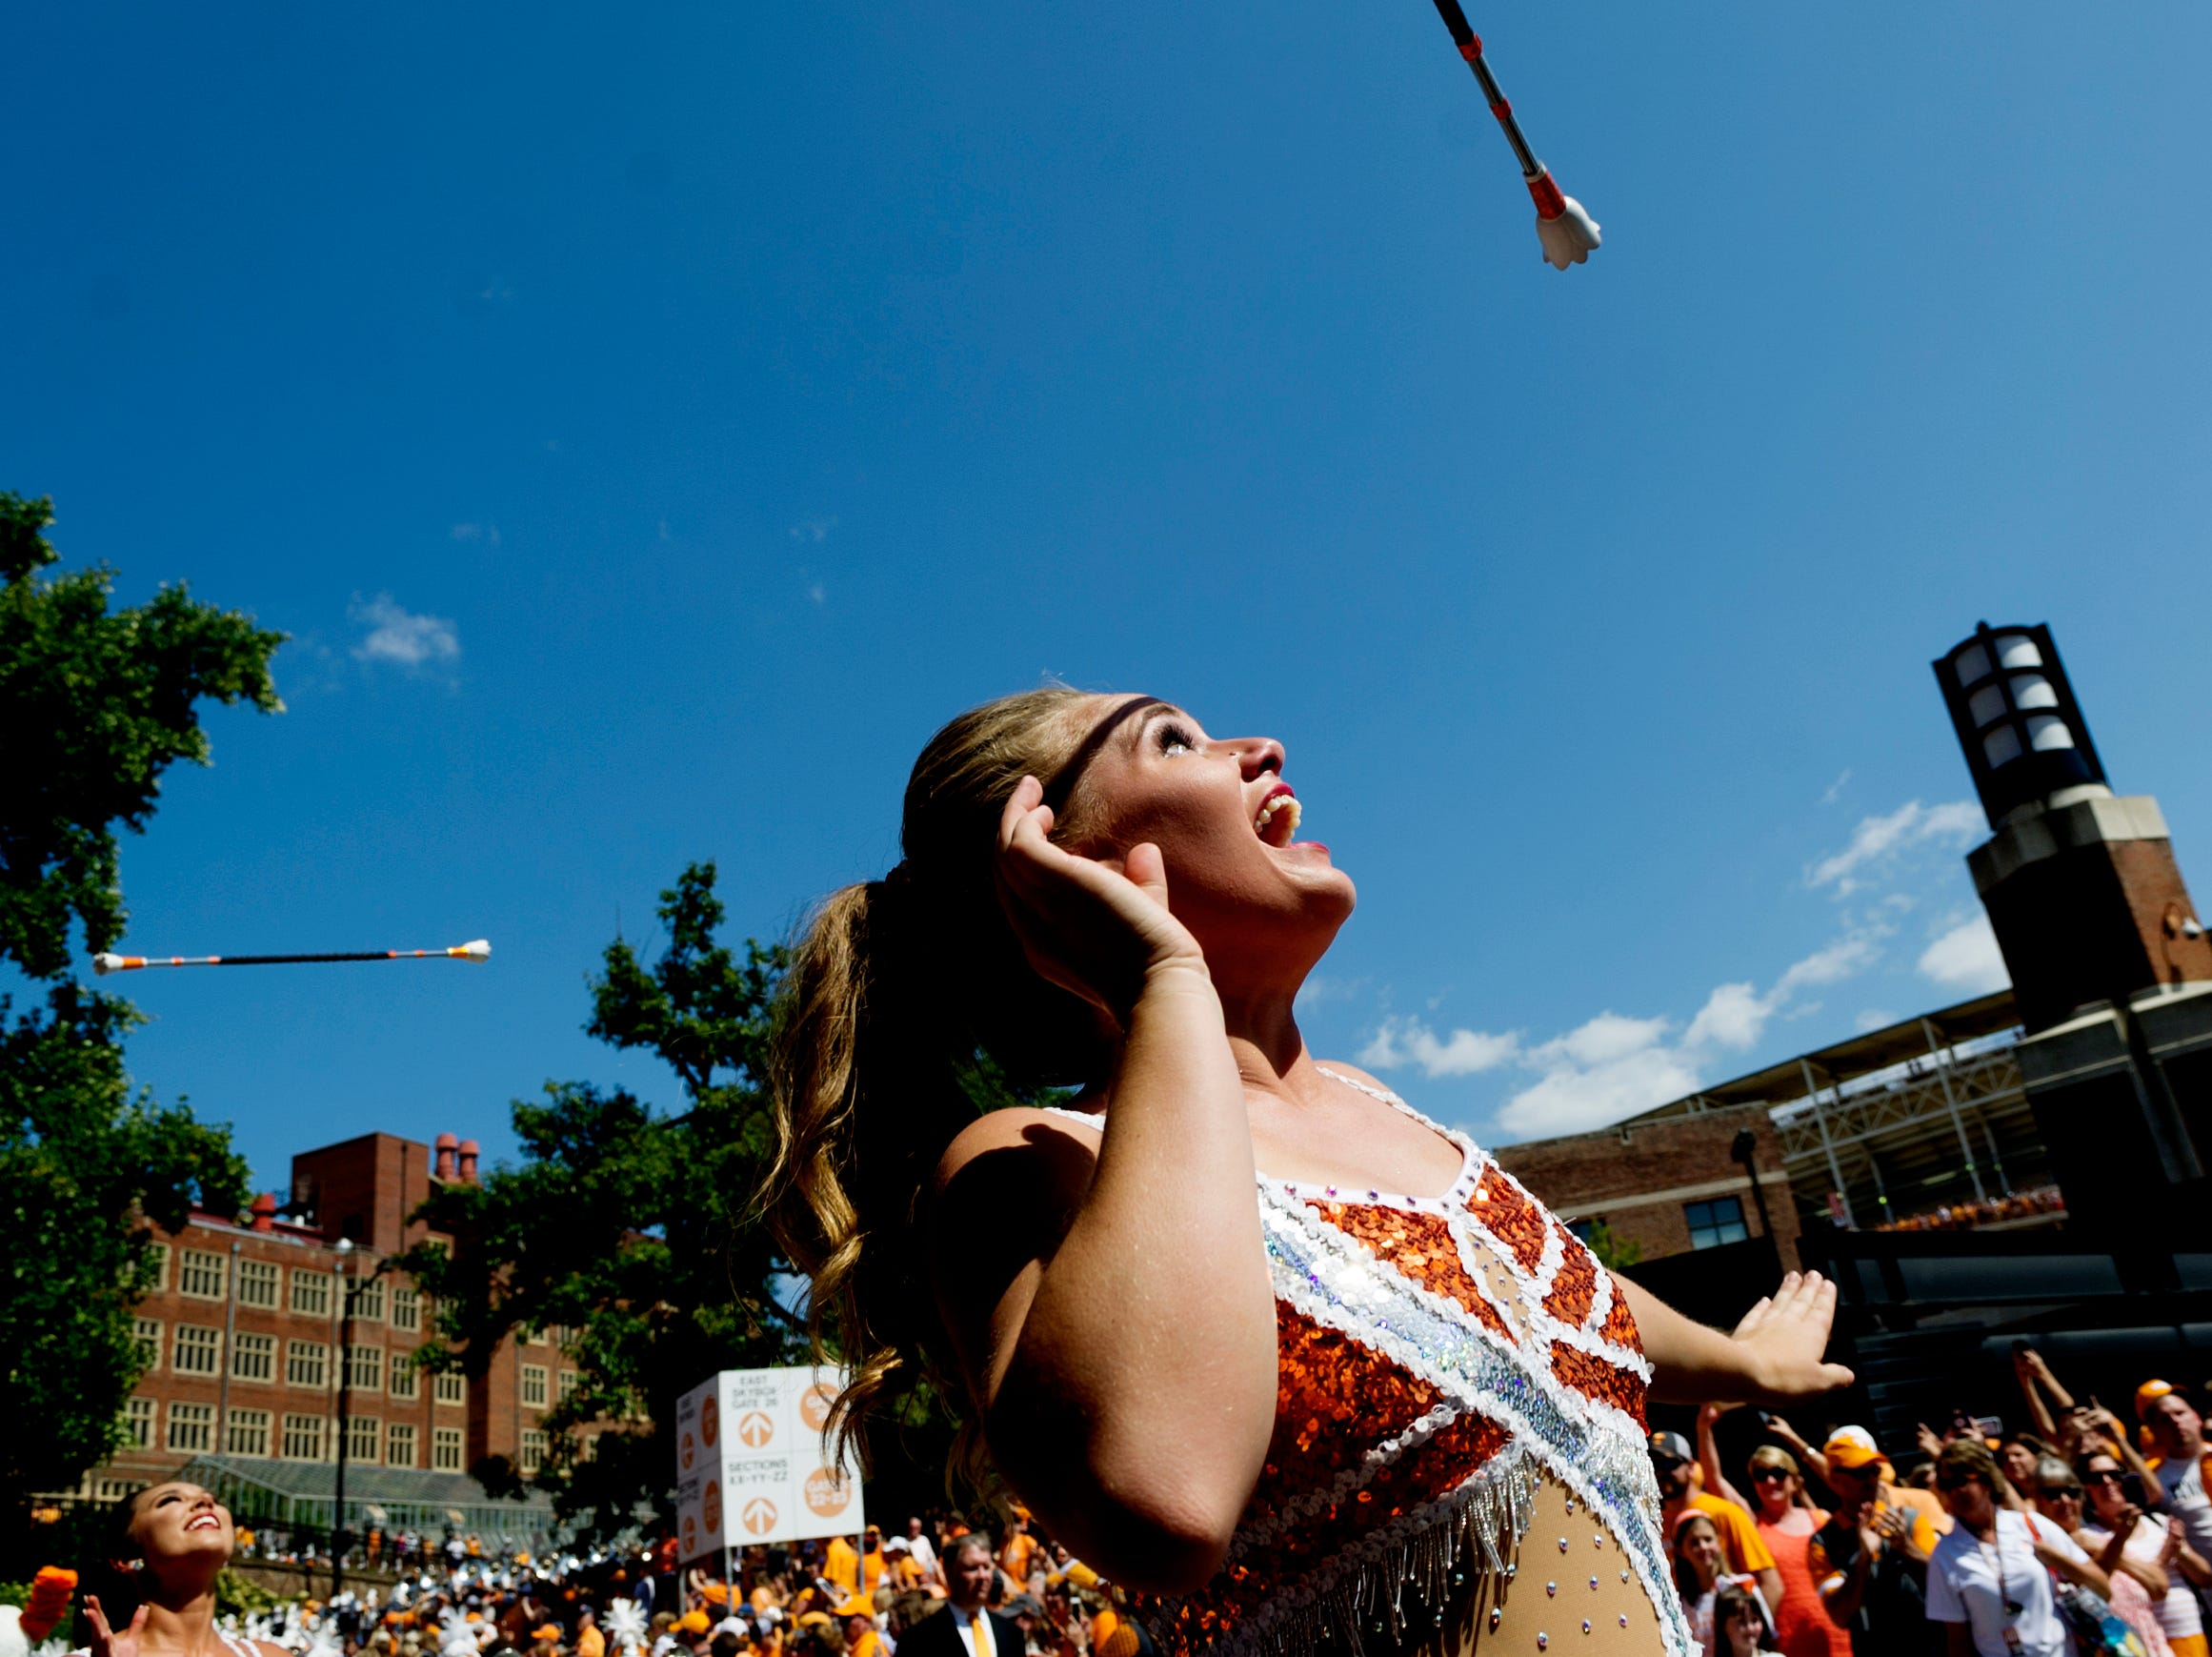 Majorettes perform with the band during the Tennessee Volunteers vs Indiana State Sycamores game at Neyland Stadium in Knoxville, Tennessee on Saturday, September 9, 2017.